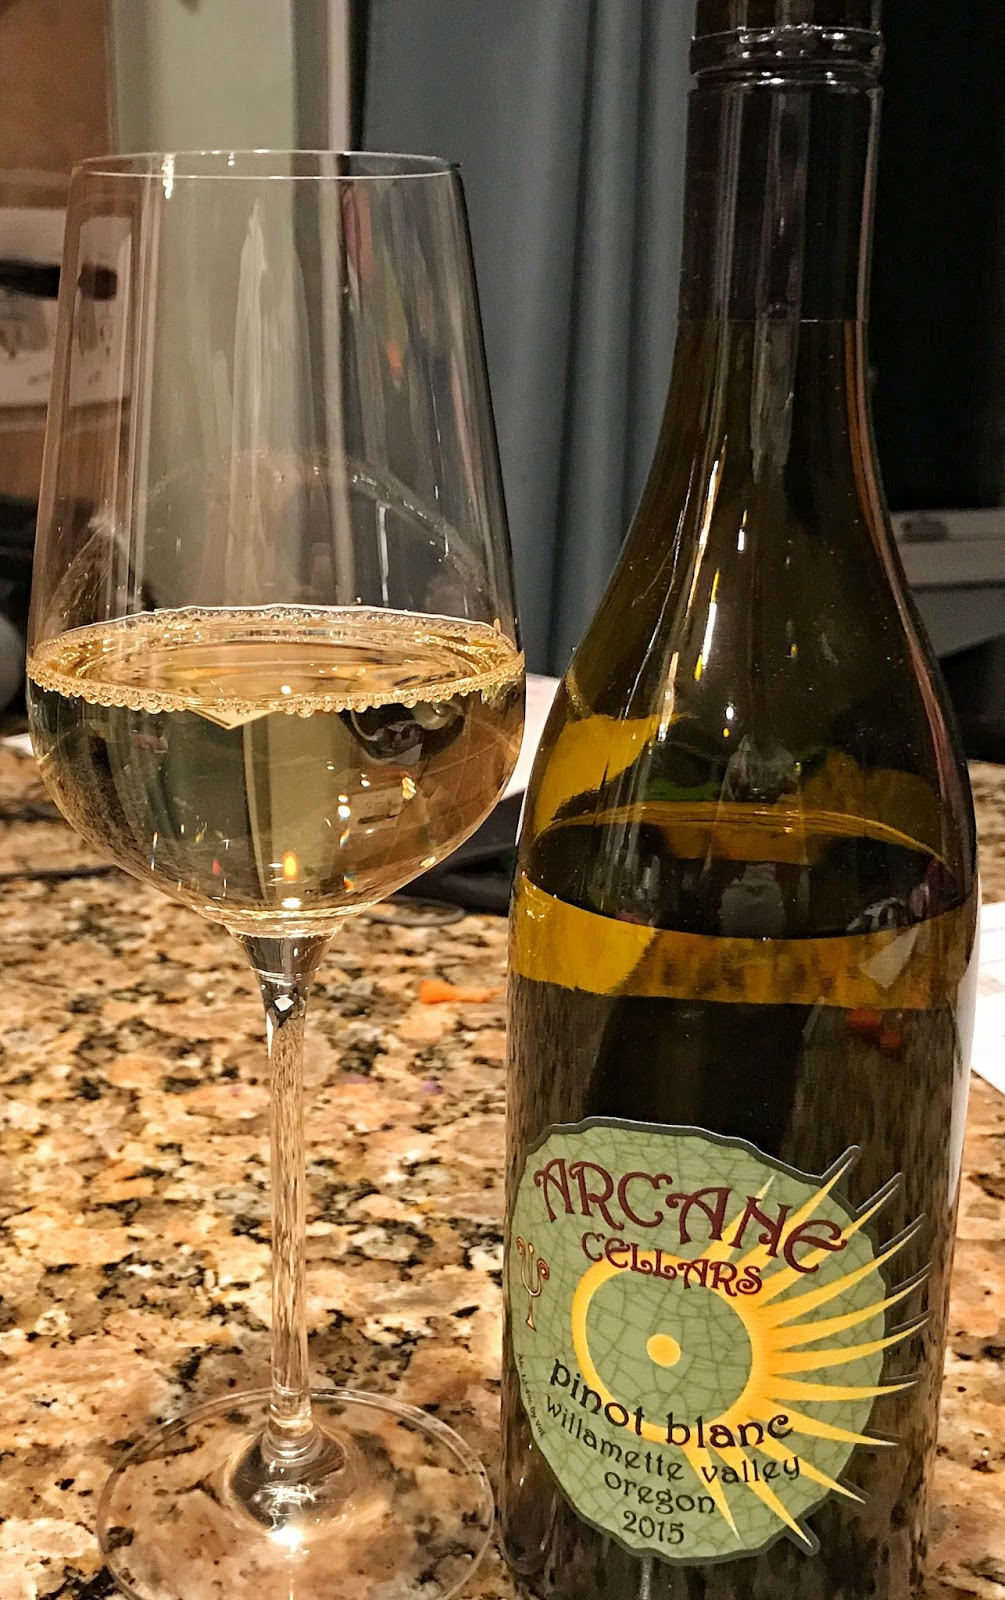 One more & 2015 Arcane Cellars Pinot Blanc | The Nittany Epicurean